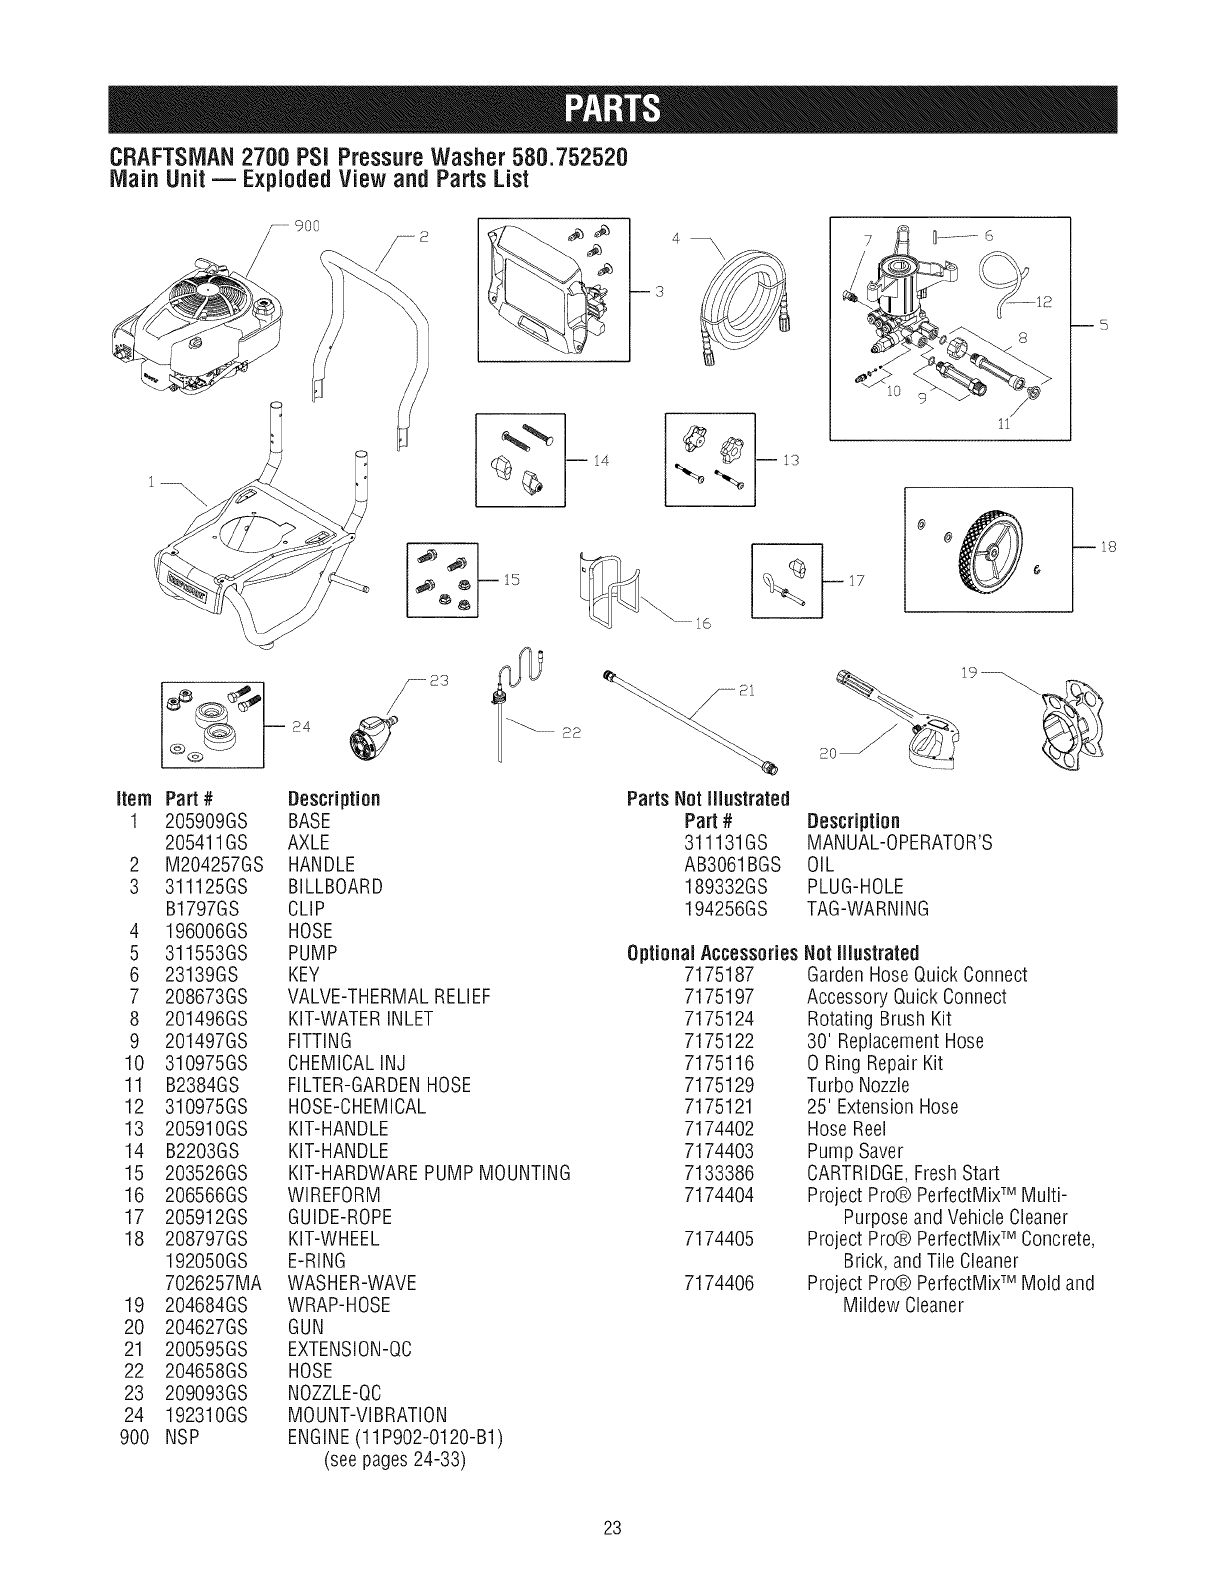 Craftsman 580752520 User Manual PRESSURE WASHER Manuals